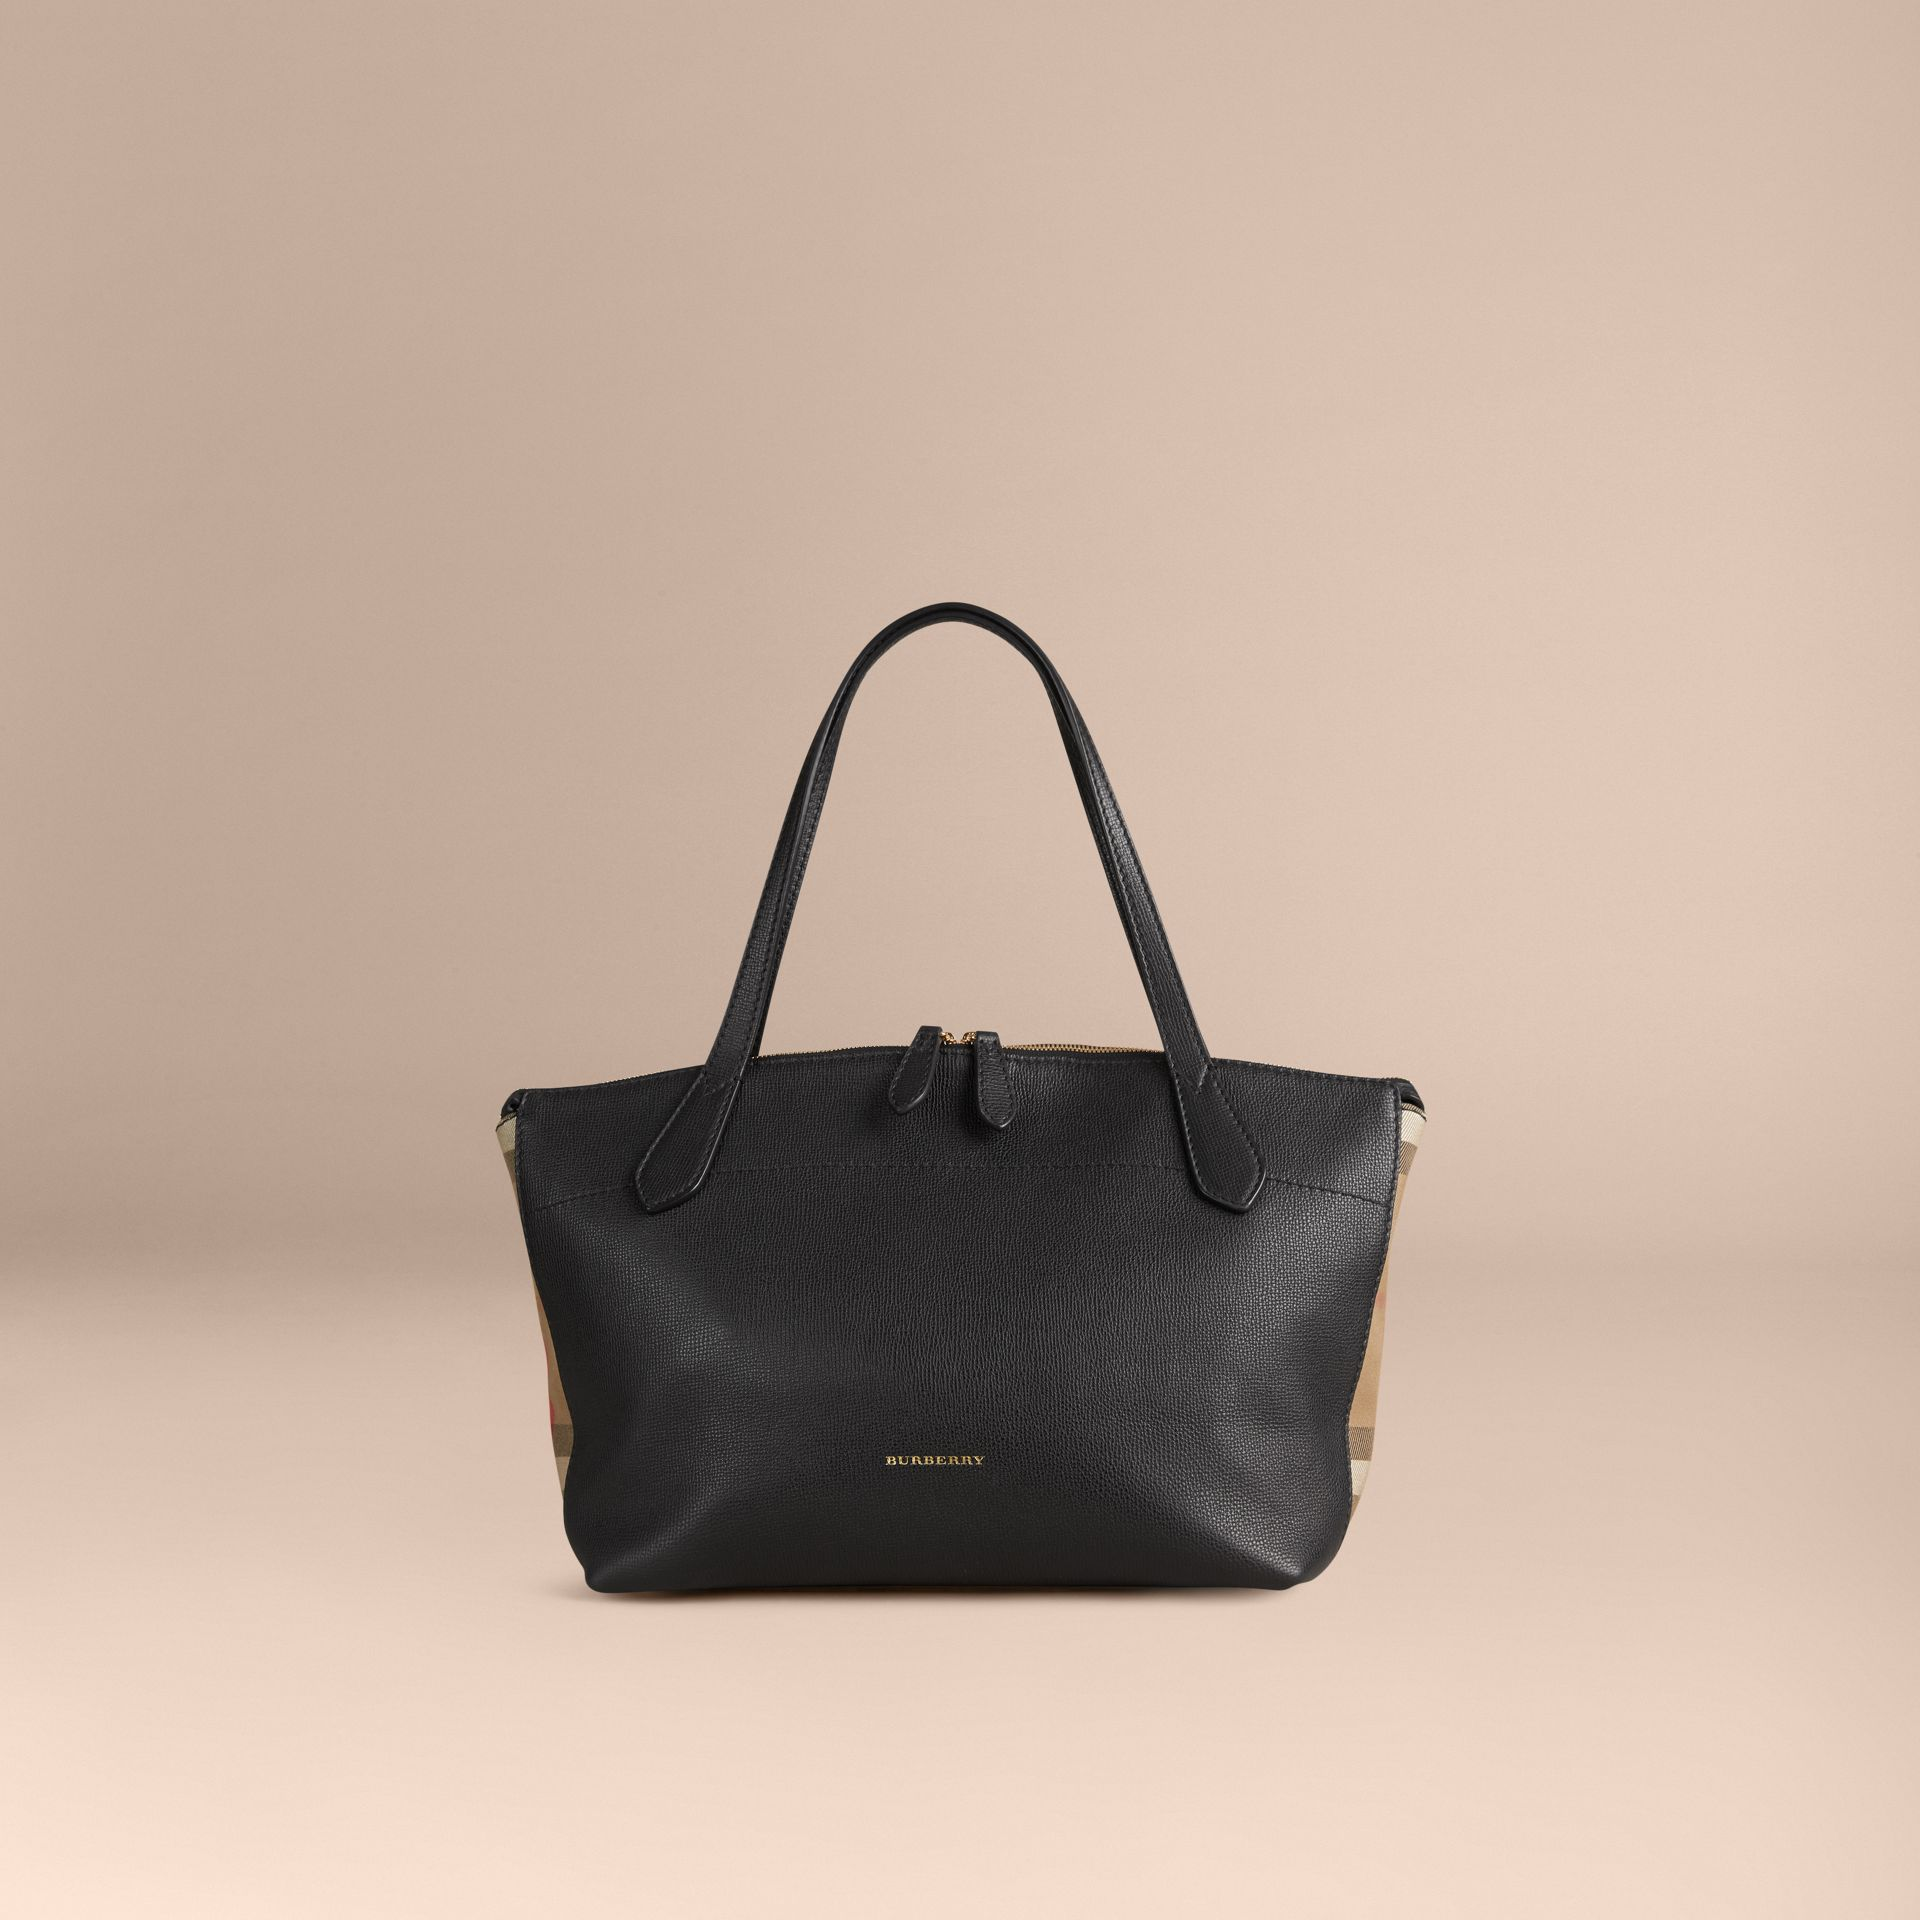 Medium Leather and House Check Tote Bag in Black - Women | Burberry - gallery image 7